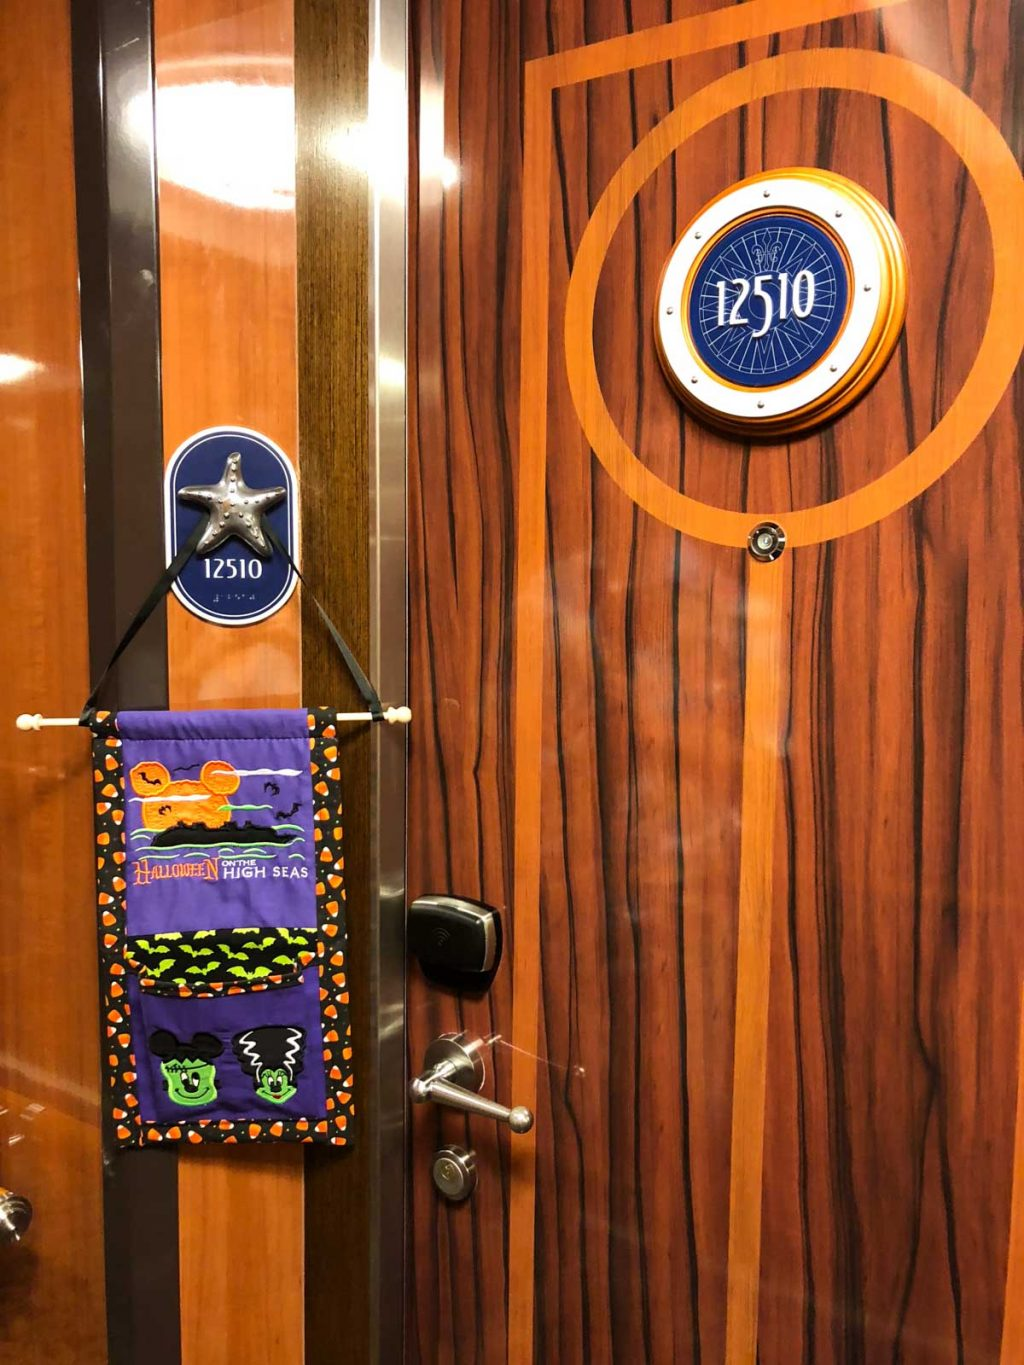 A purple fish extender hanging on a concierge stateroom door #12510 on the Disney Fantasy.